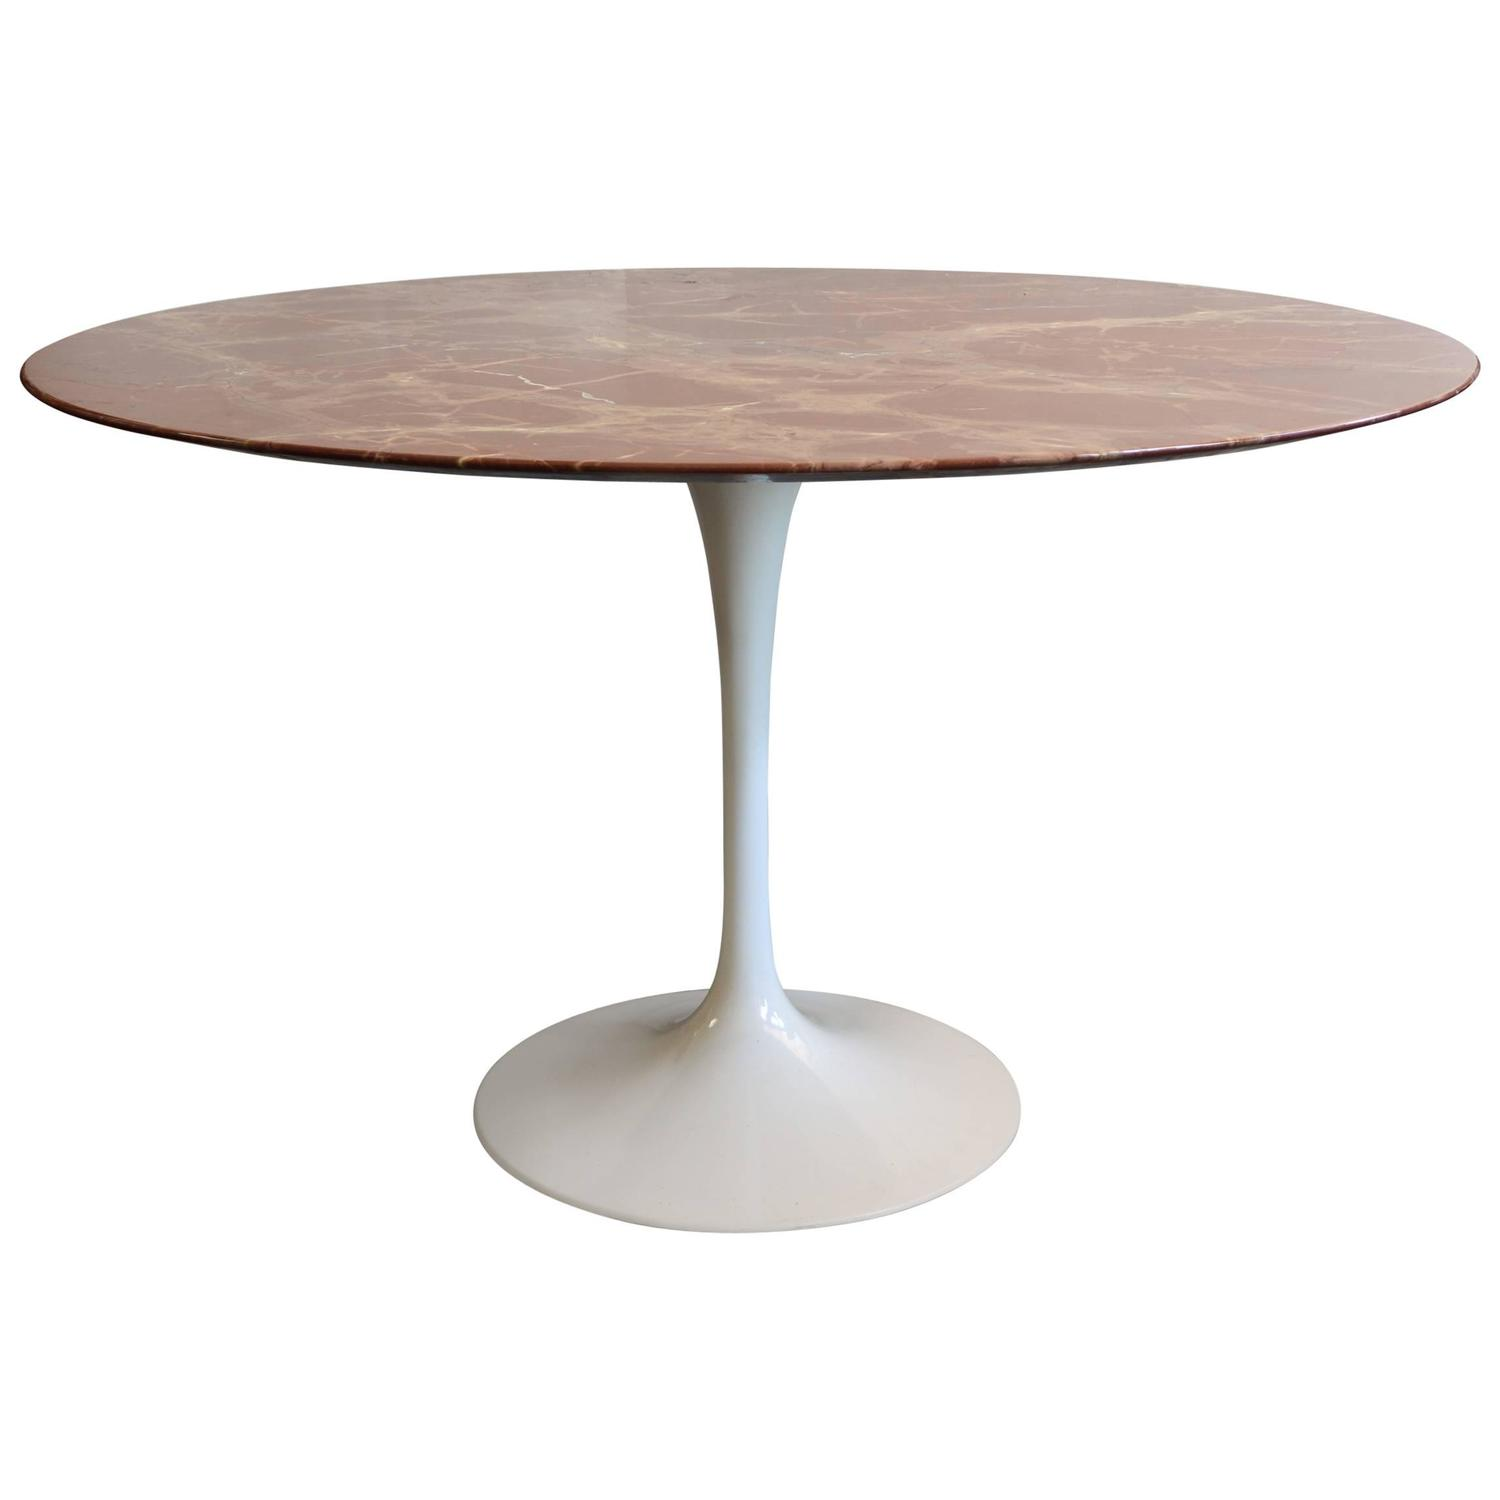 Saarinen Tulip Table : 4815113z from www.tehroony.com size 1500 x 1500 jpeg 39kB